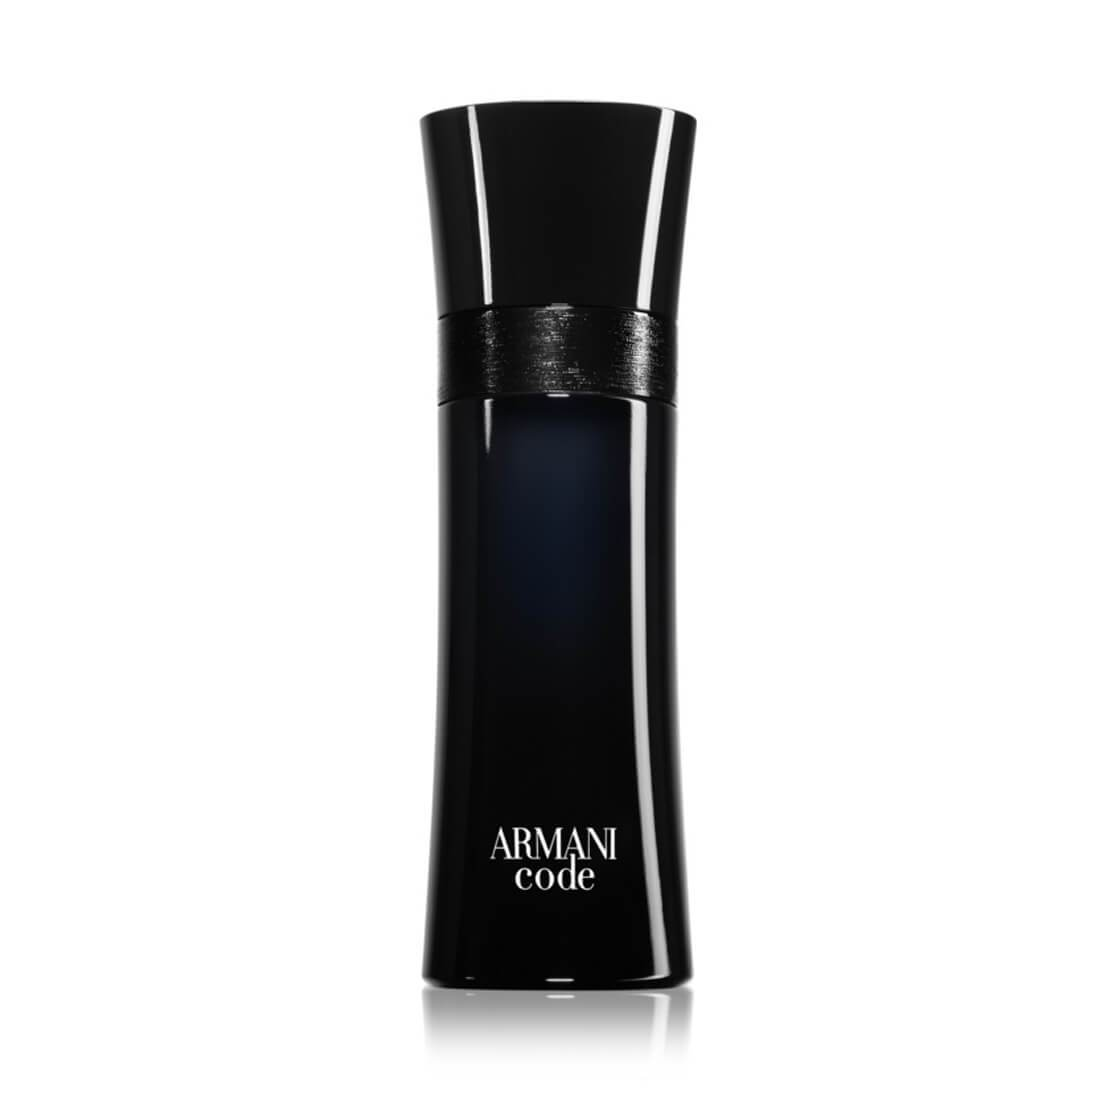 Giorgio Armani Code EDT Perfume For Men - 125ml